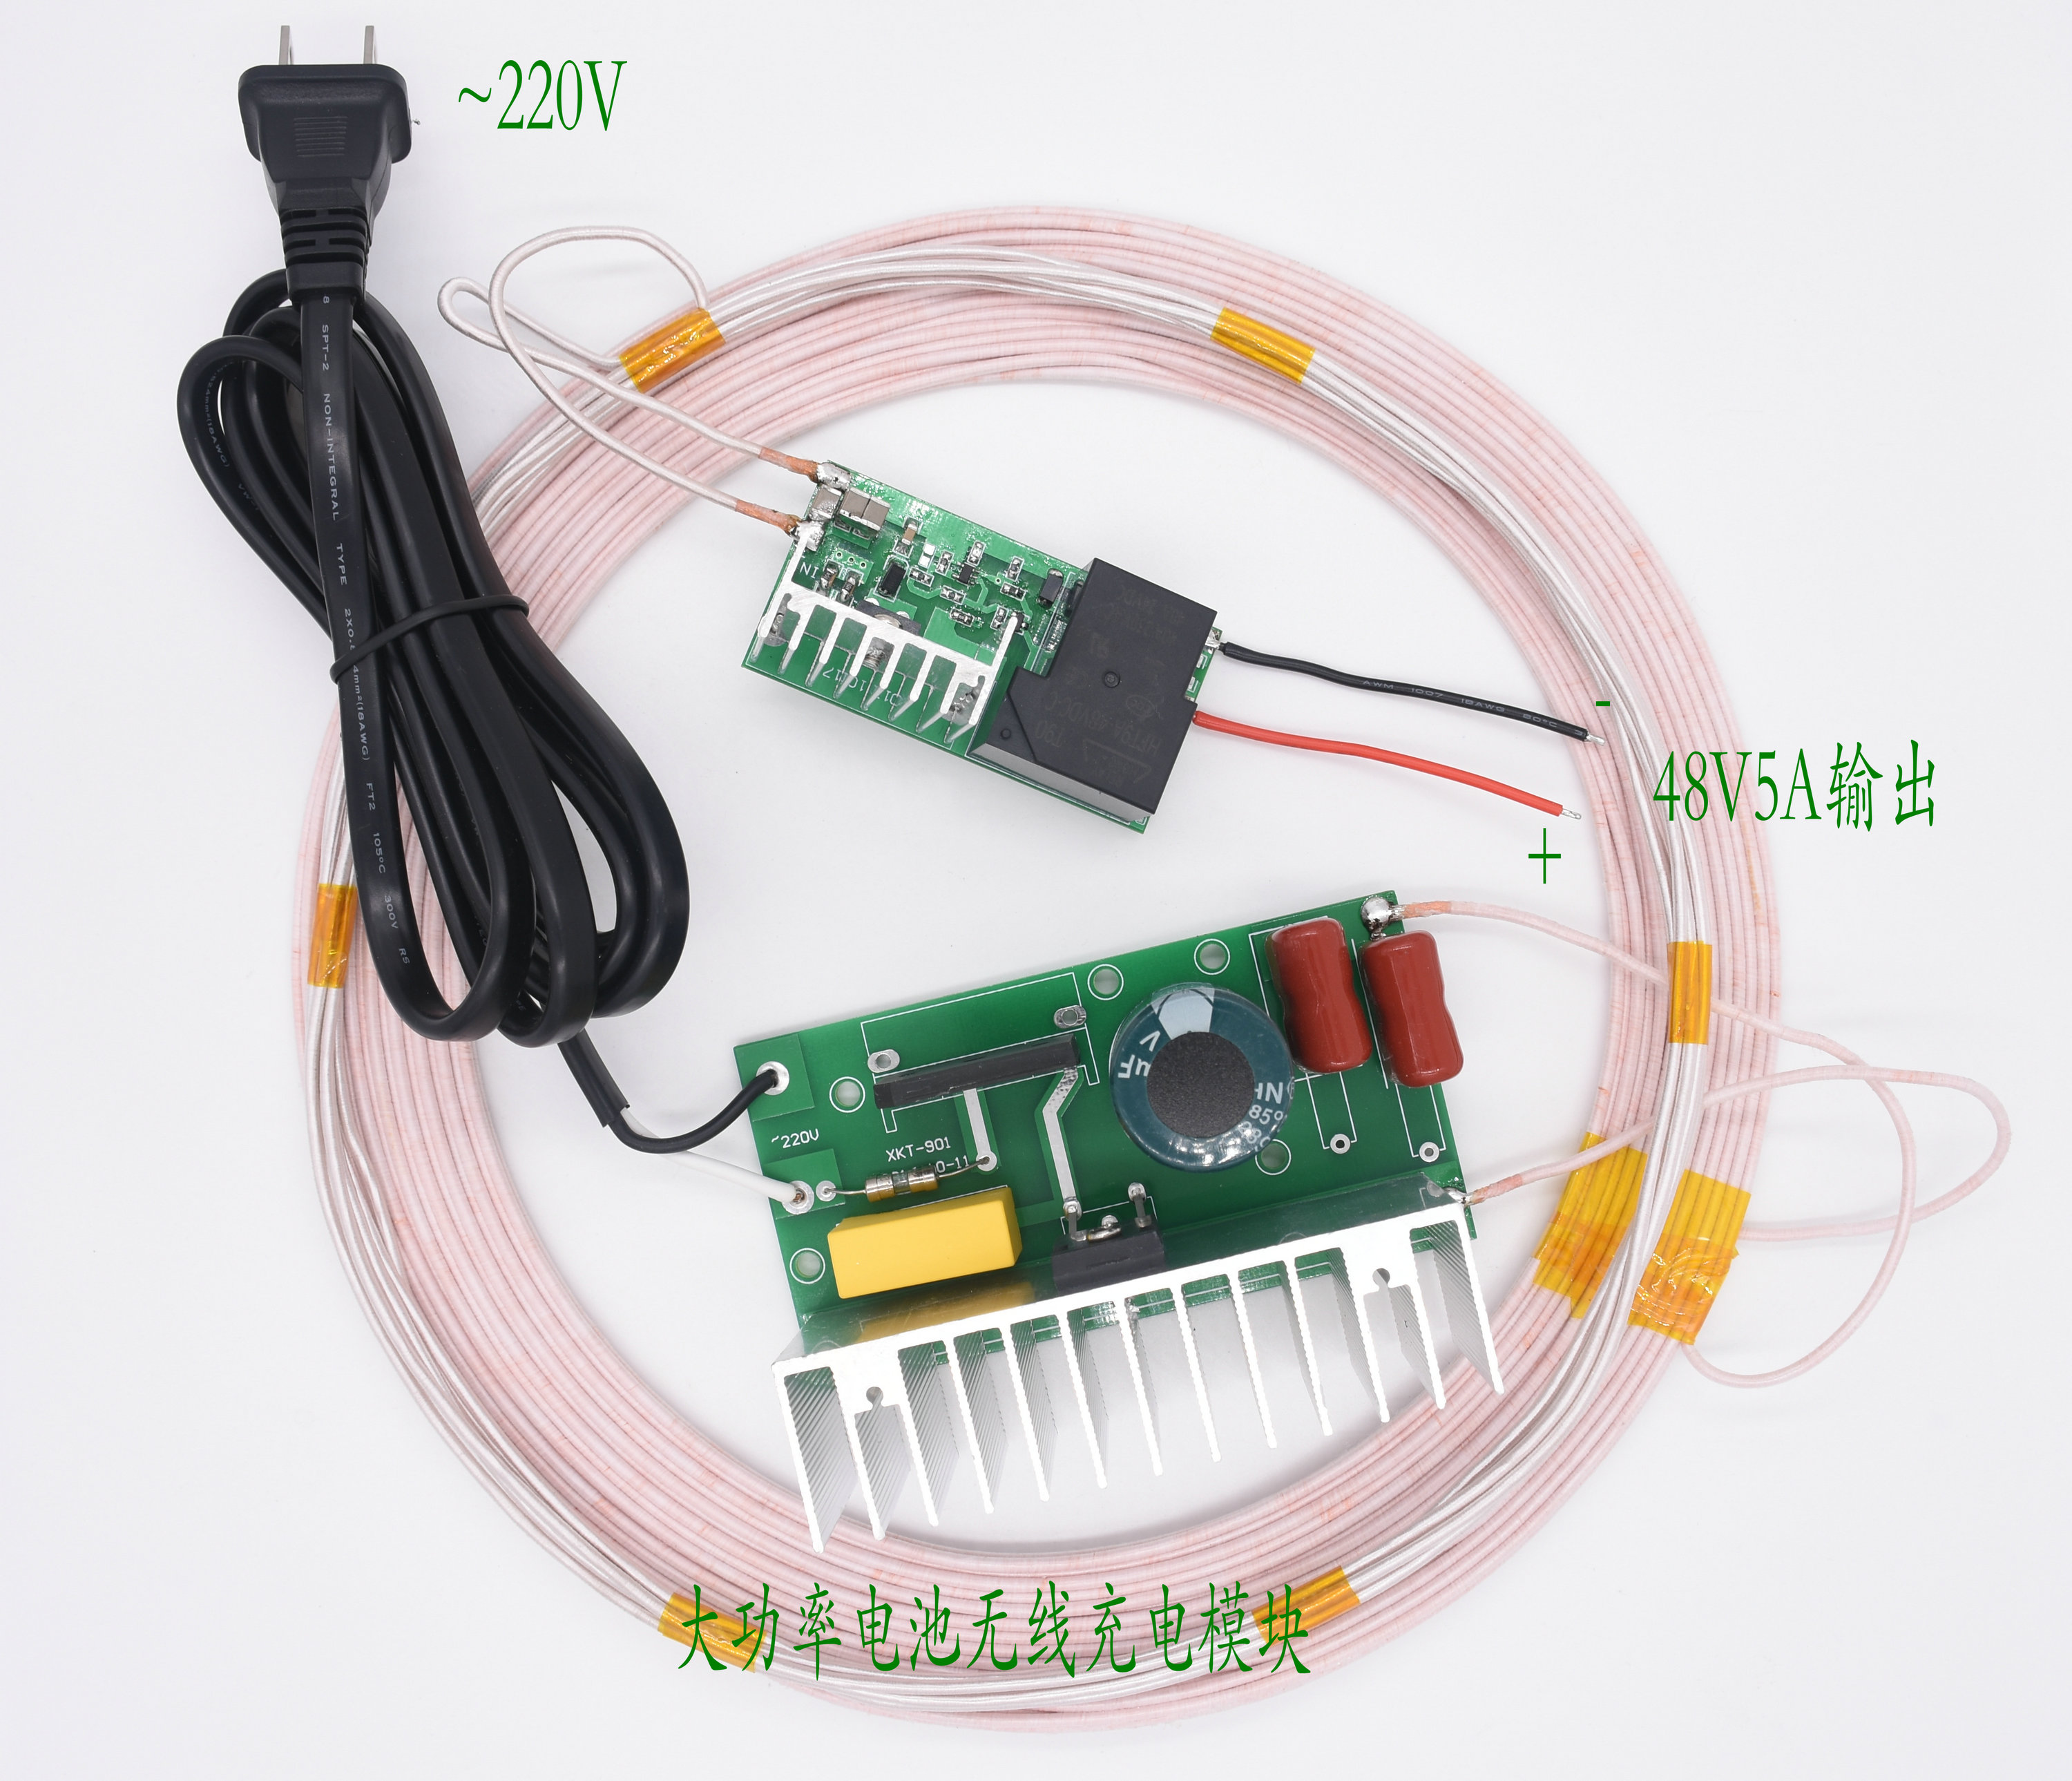 48V 5A High Power Wireless Charging Module, Wireless Transmission Module, Wireless Power Supply Module XKT901-06 5v1 5a high current wireless charging module power supply module ic chip solution